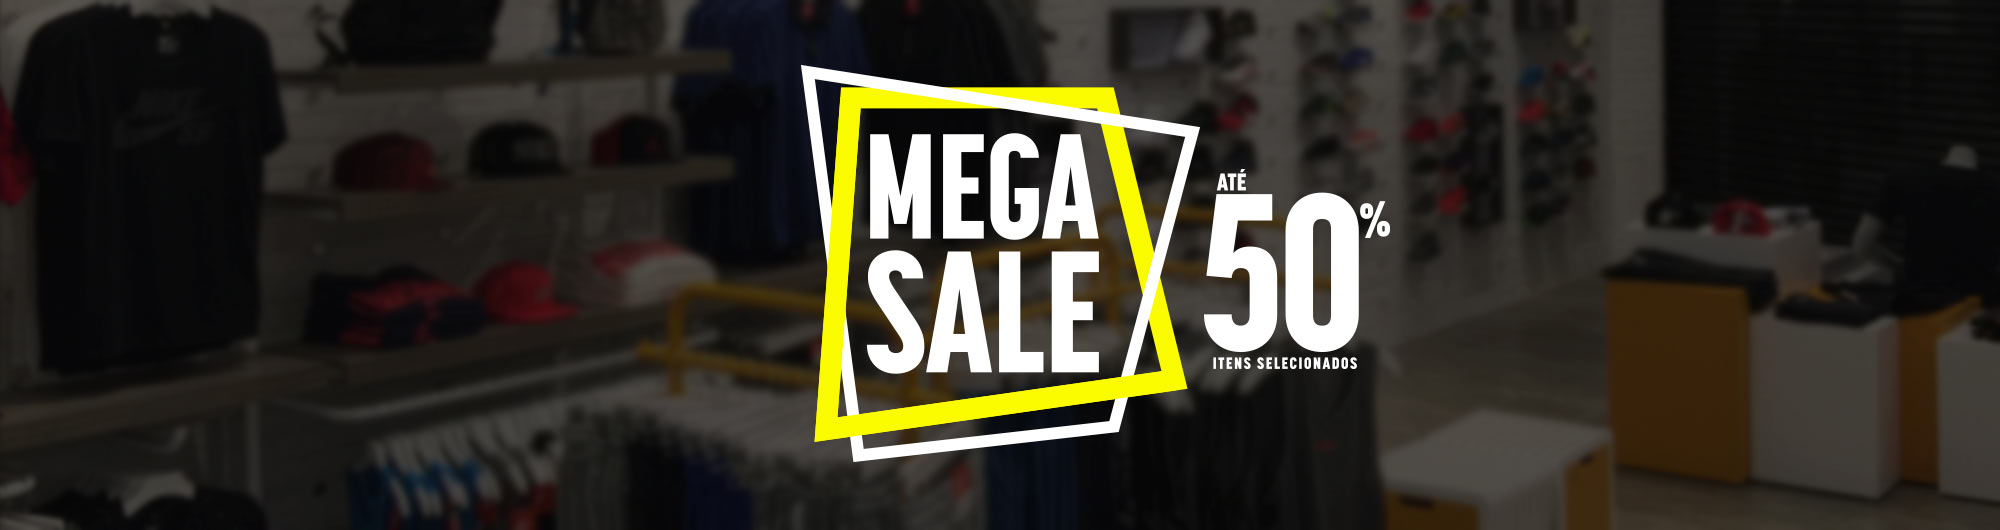 TV 3 - Mega Sale